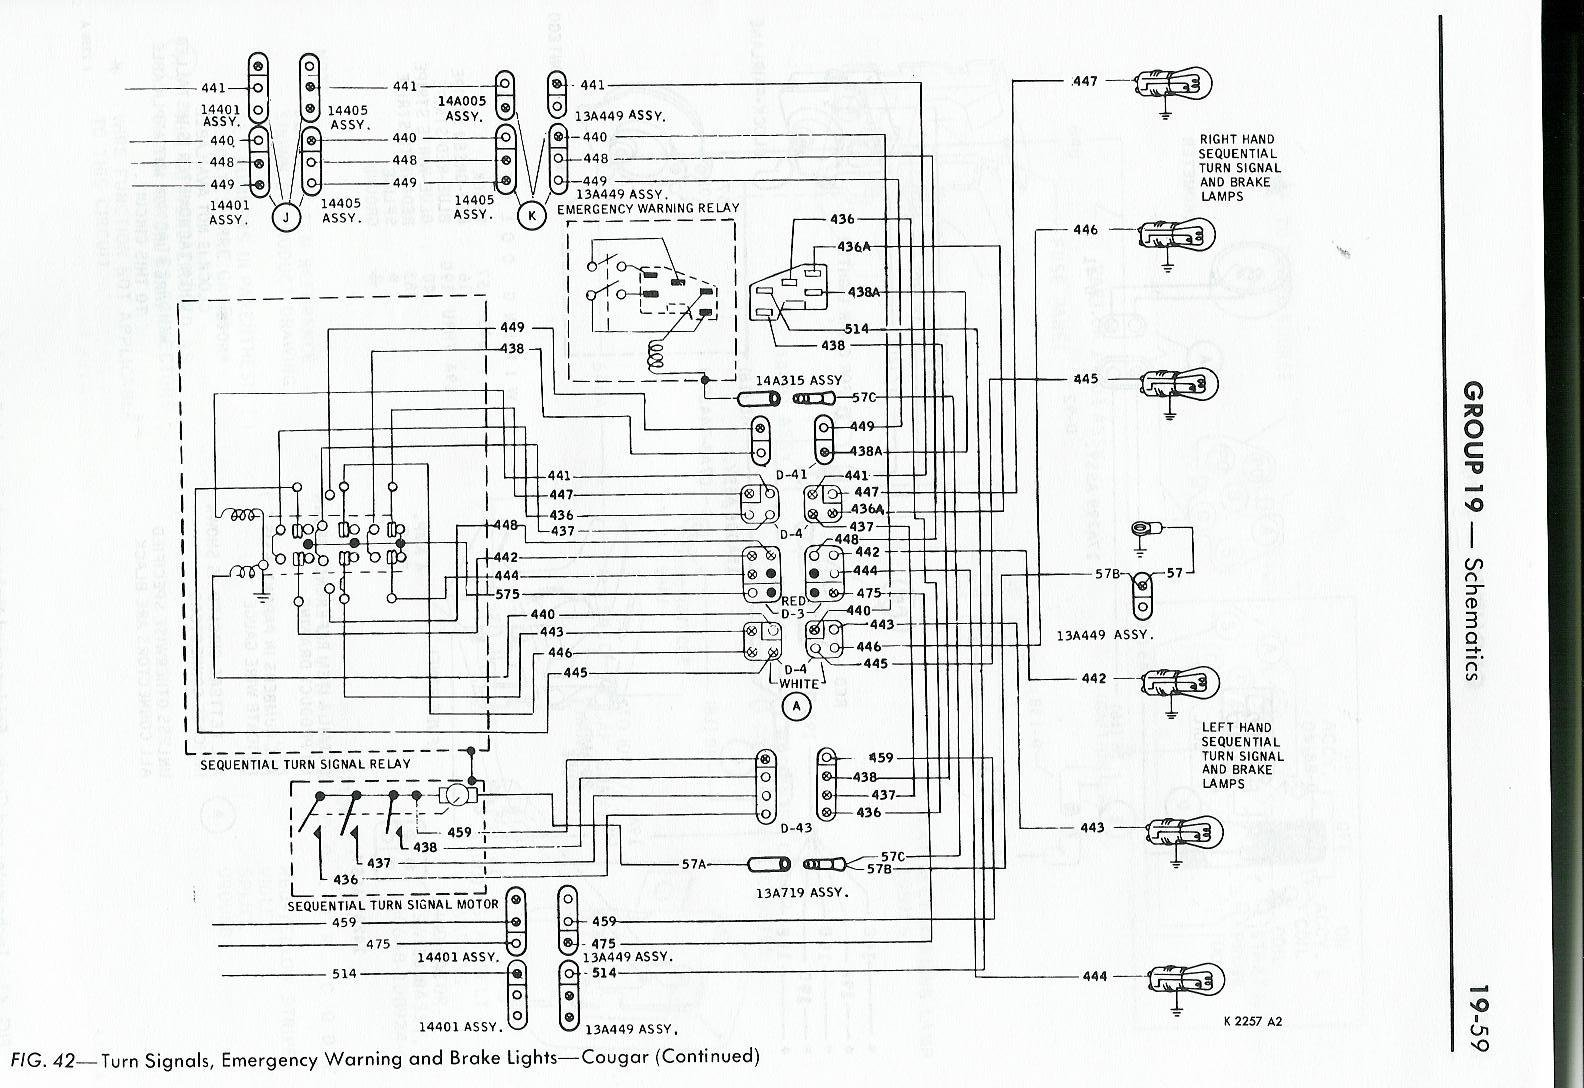 1971 ford mustang mercury cougar factory wiring diagram original 69 Mustang Wiring Diagram 1969 cougar wiring diagram